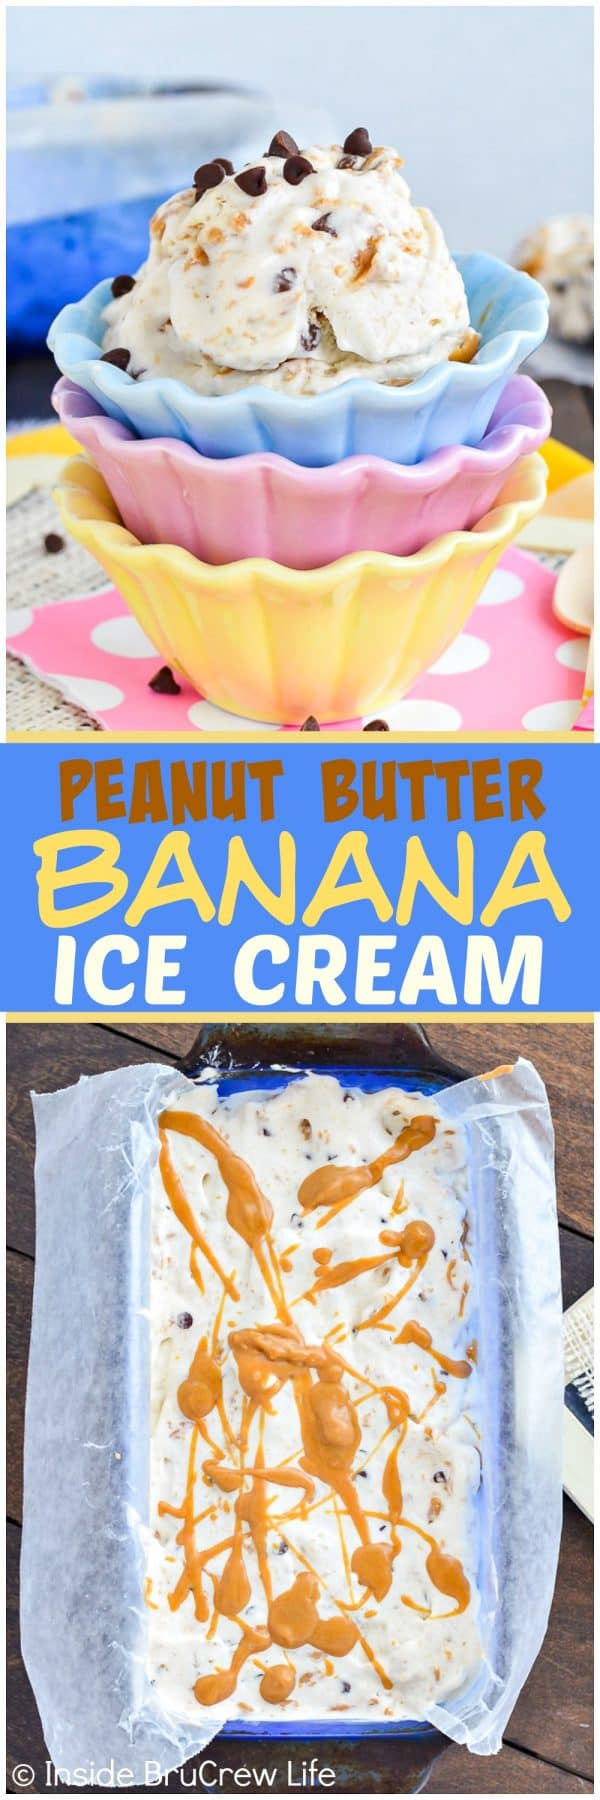 Peanut Butter Banana Ice Cream - swirls of peanut butter and chocolate chips add a great taste and texture to this easy banana ice cream. Great recipe to make when you are craving something sweet.